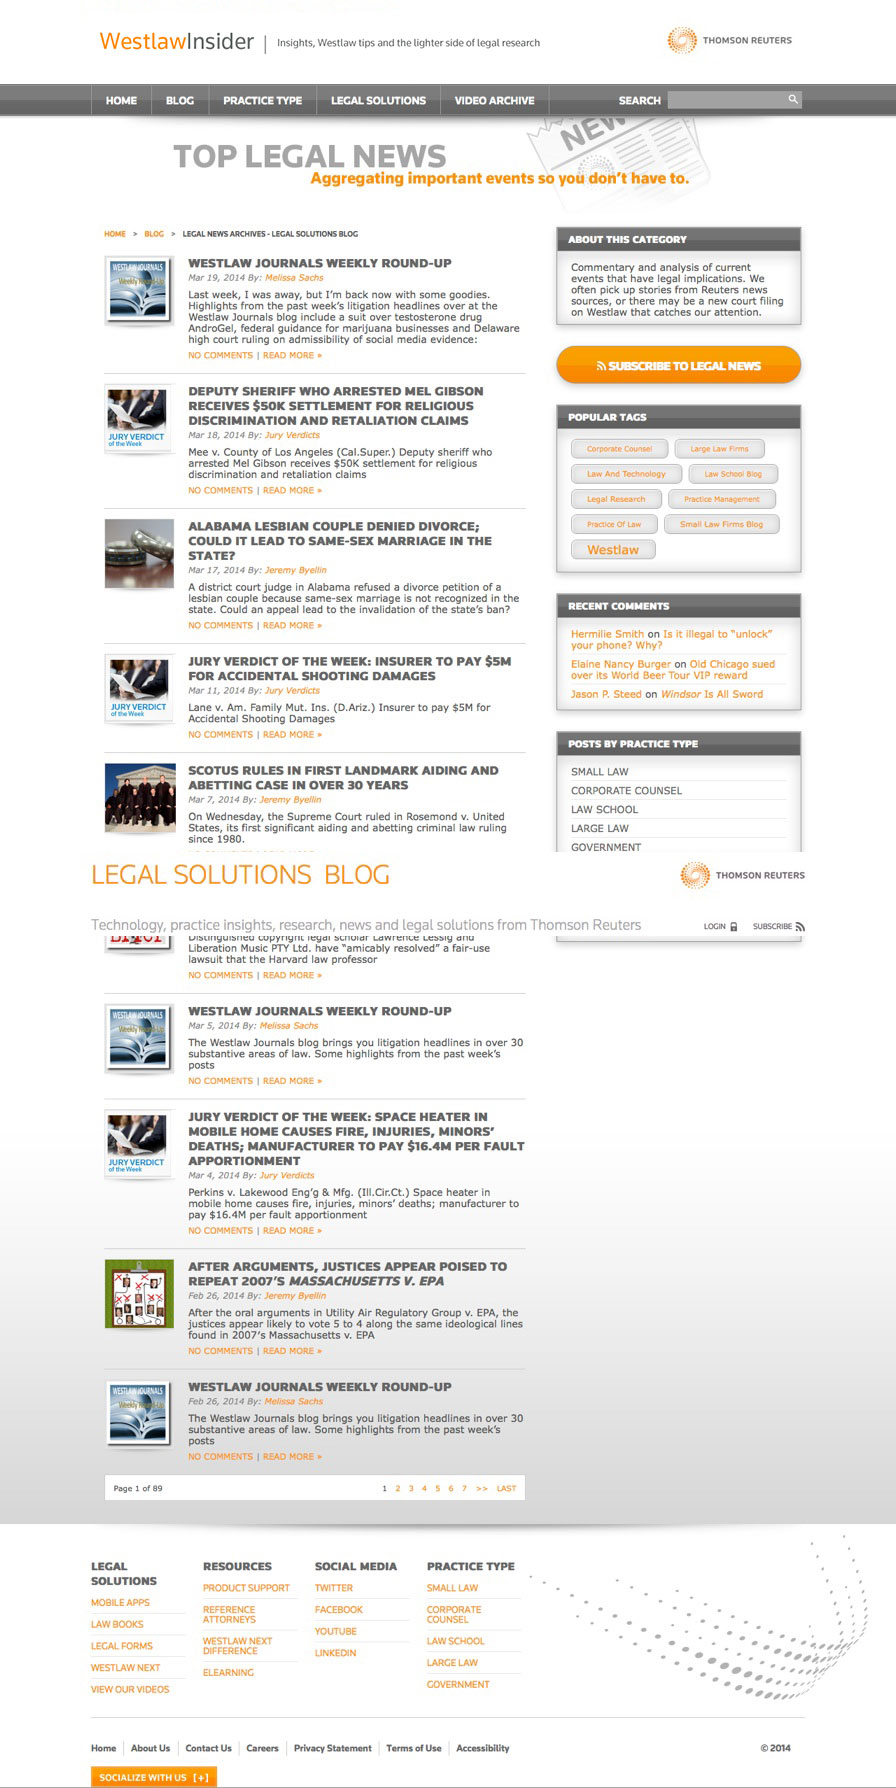 Thomson Reuters Legal News Website Design